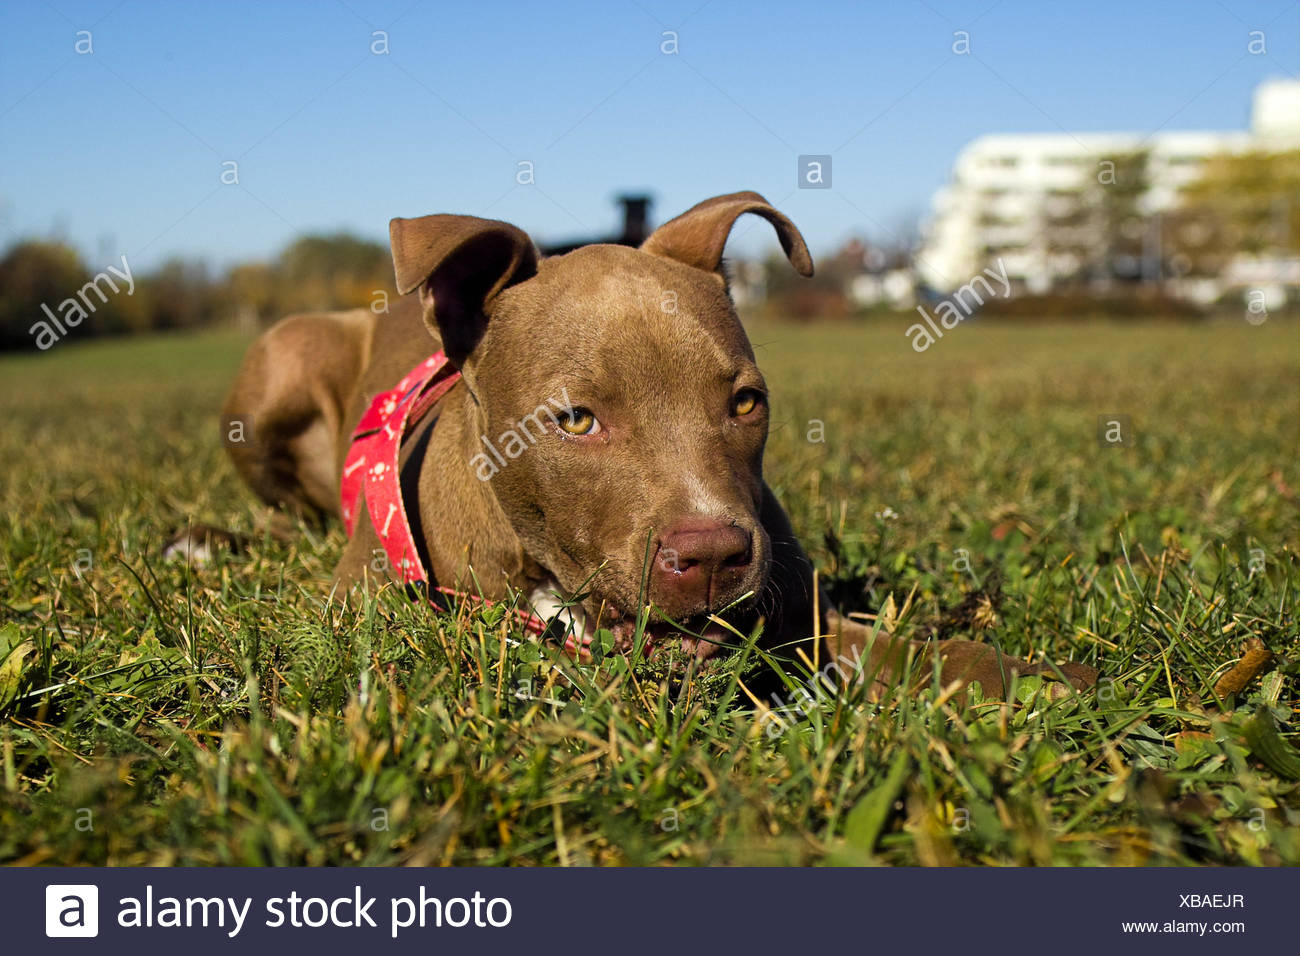 animal dog puppy terrier game tournament play playing plays played brown - Stock Image